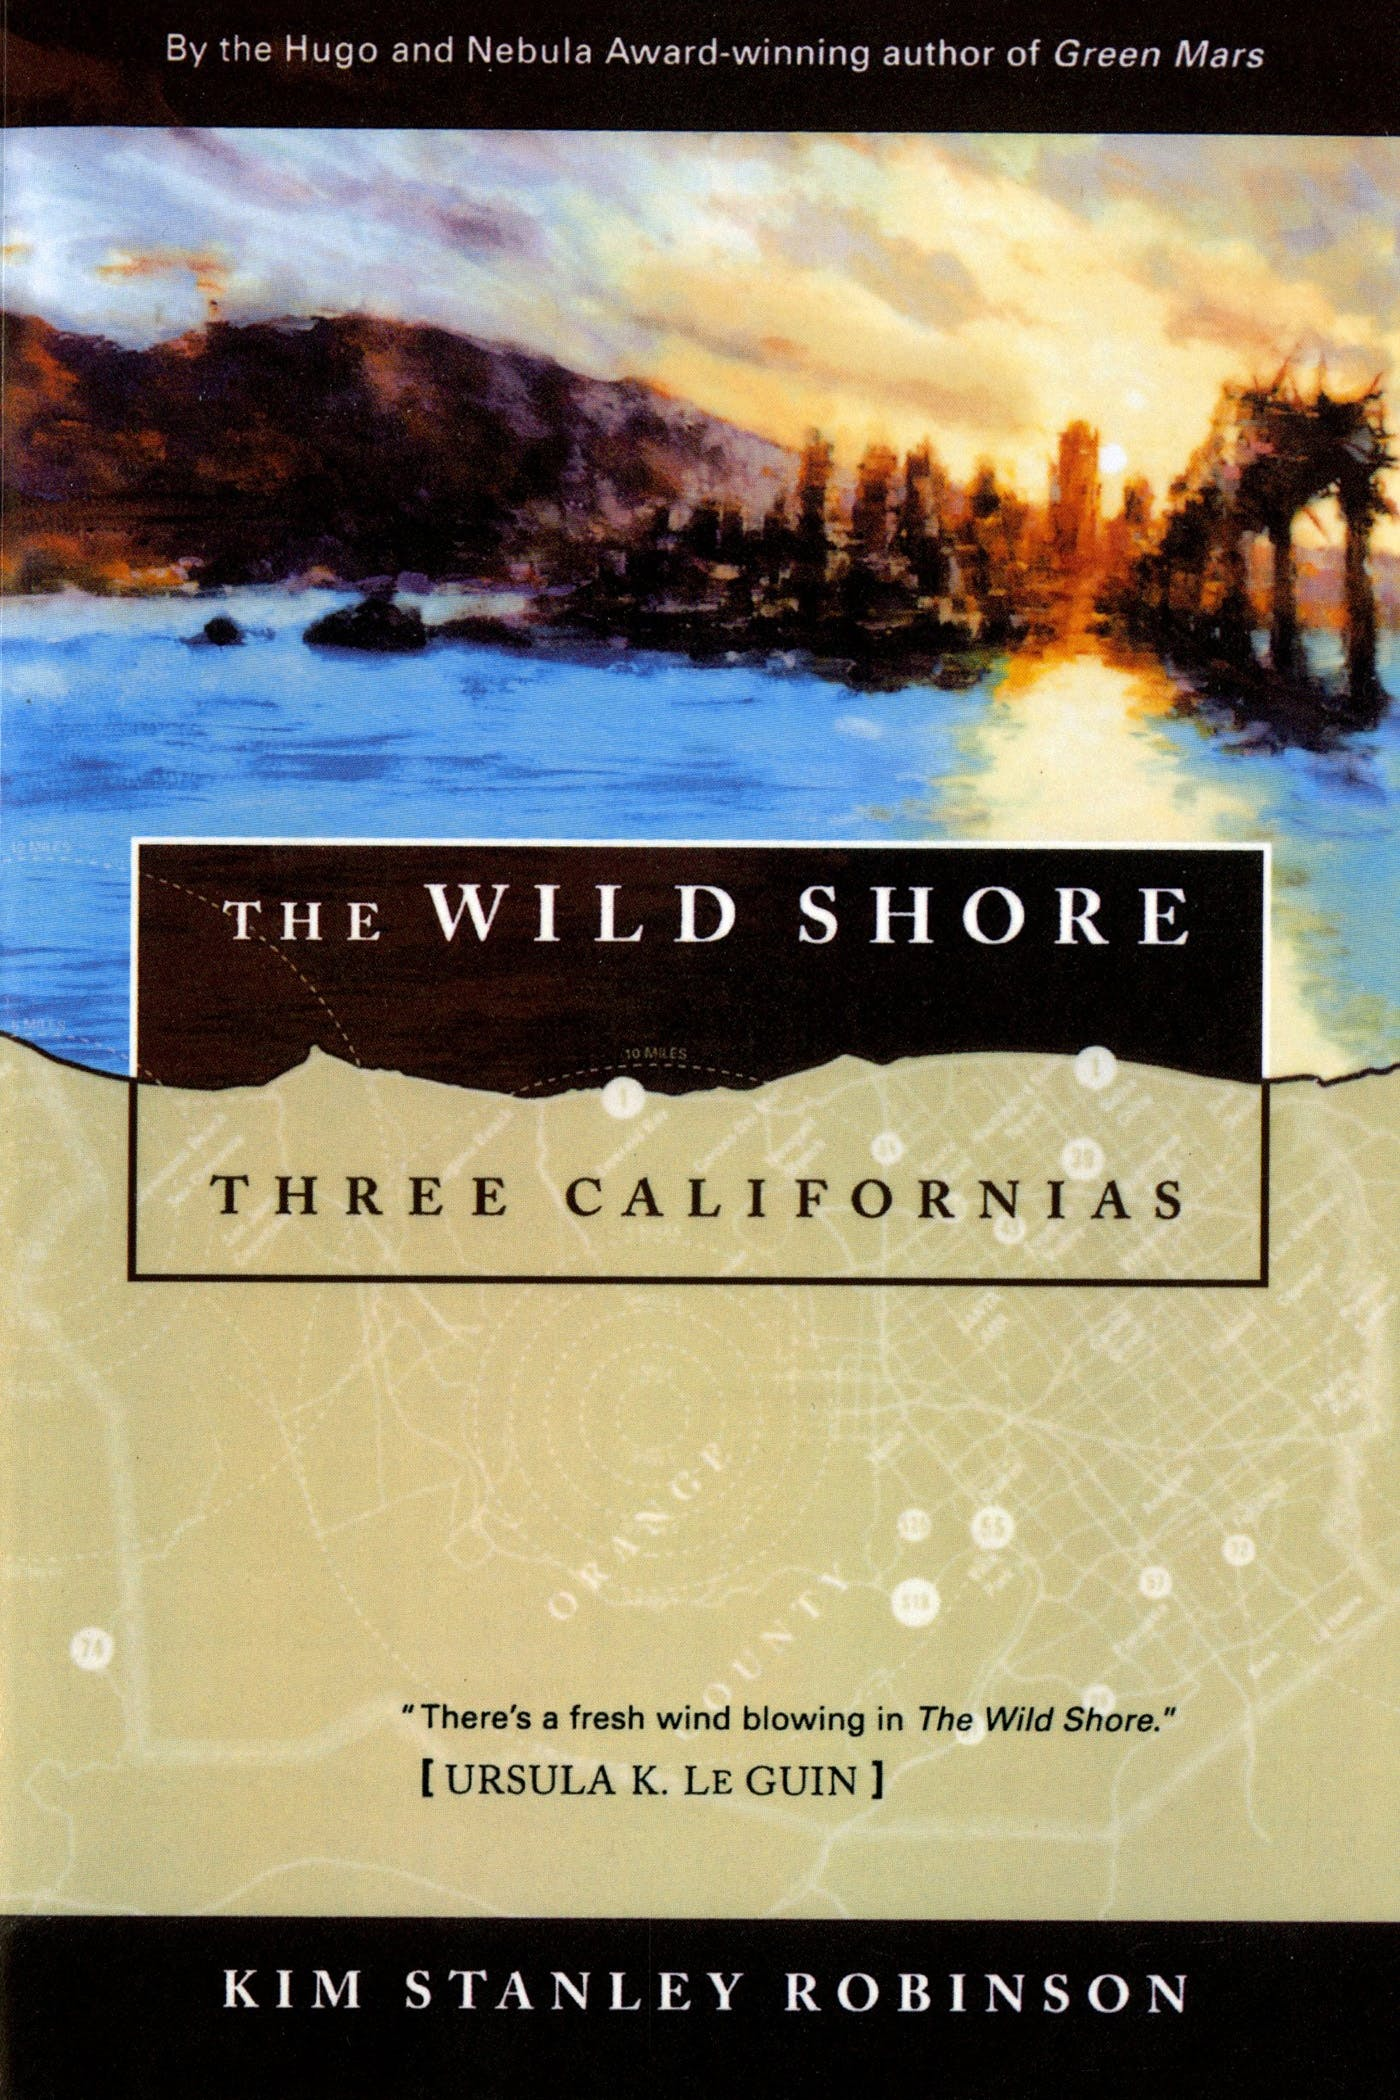 Image of The Wild Shore